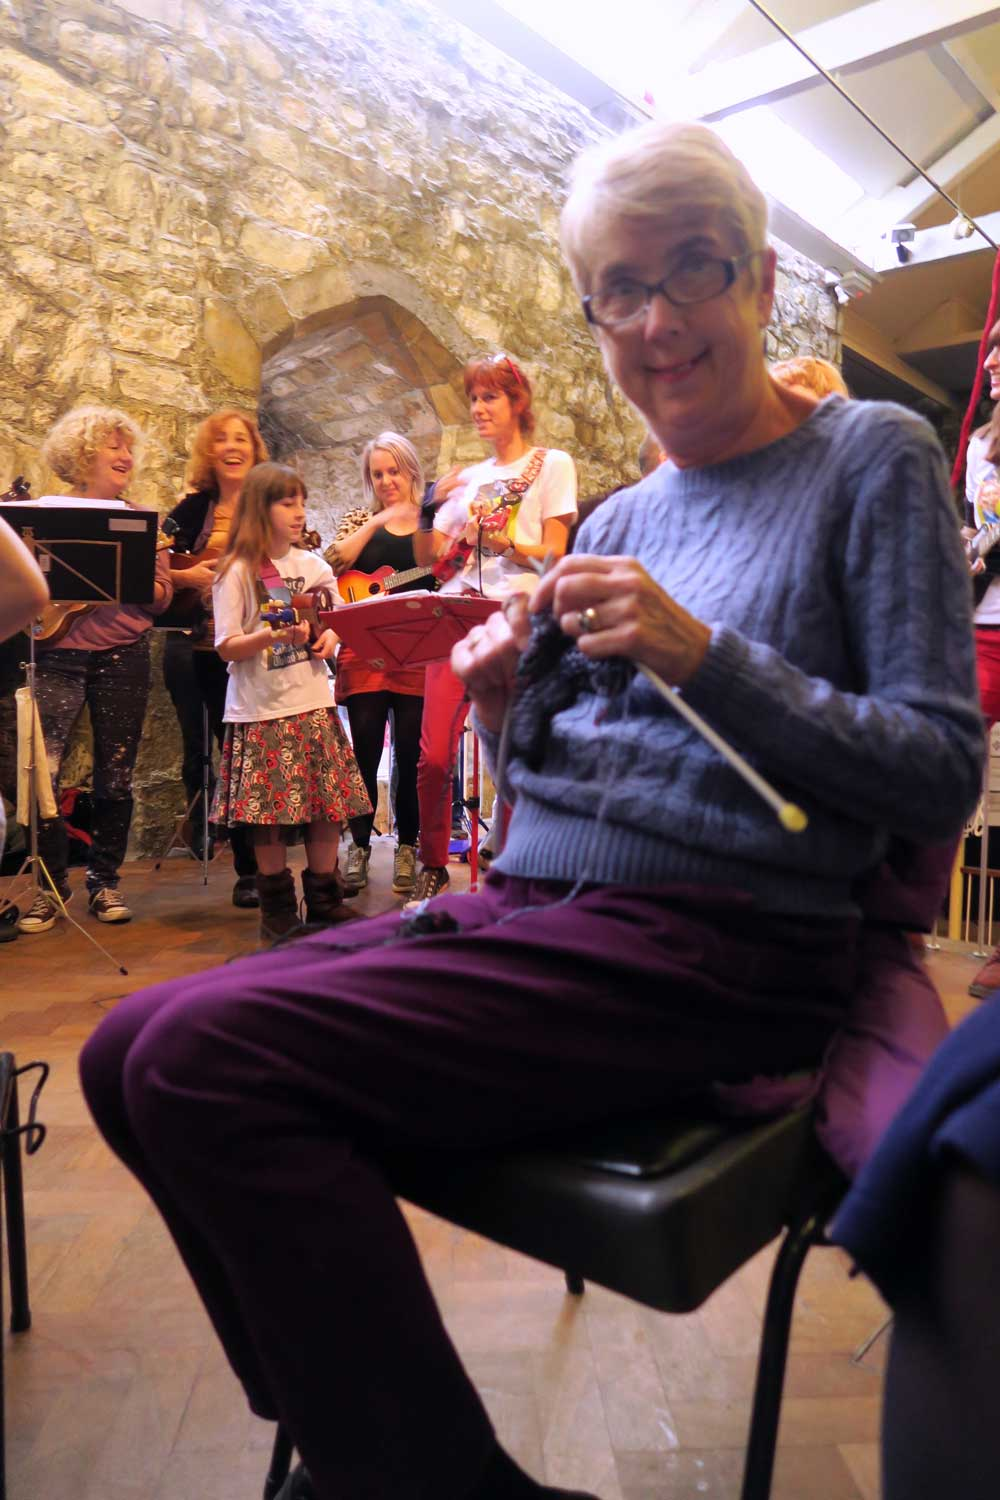 knit-the-walls-and-southampton-ukulady-jam-at-700-women